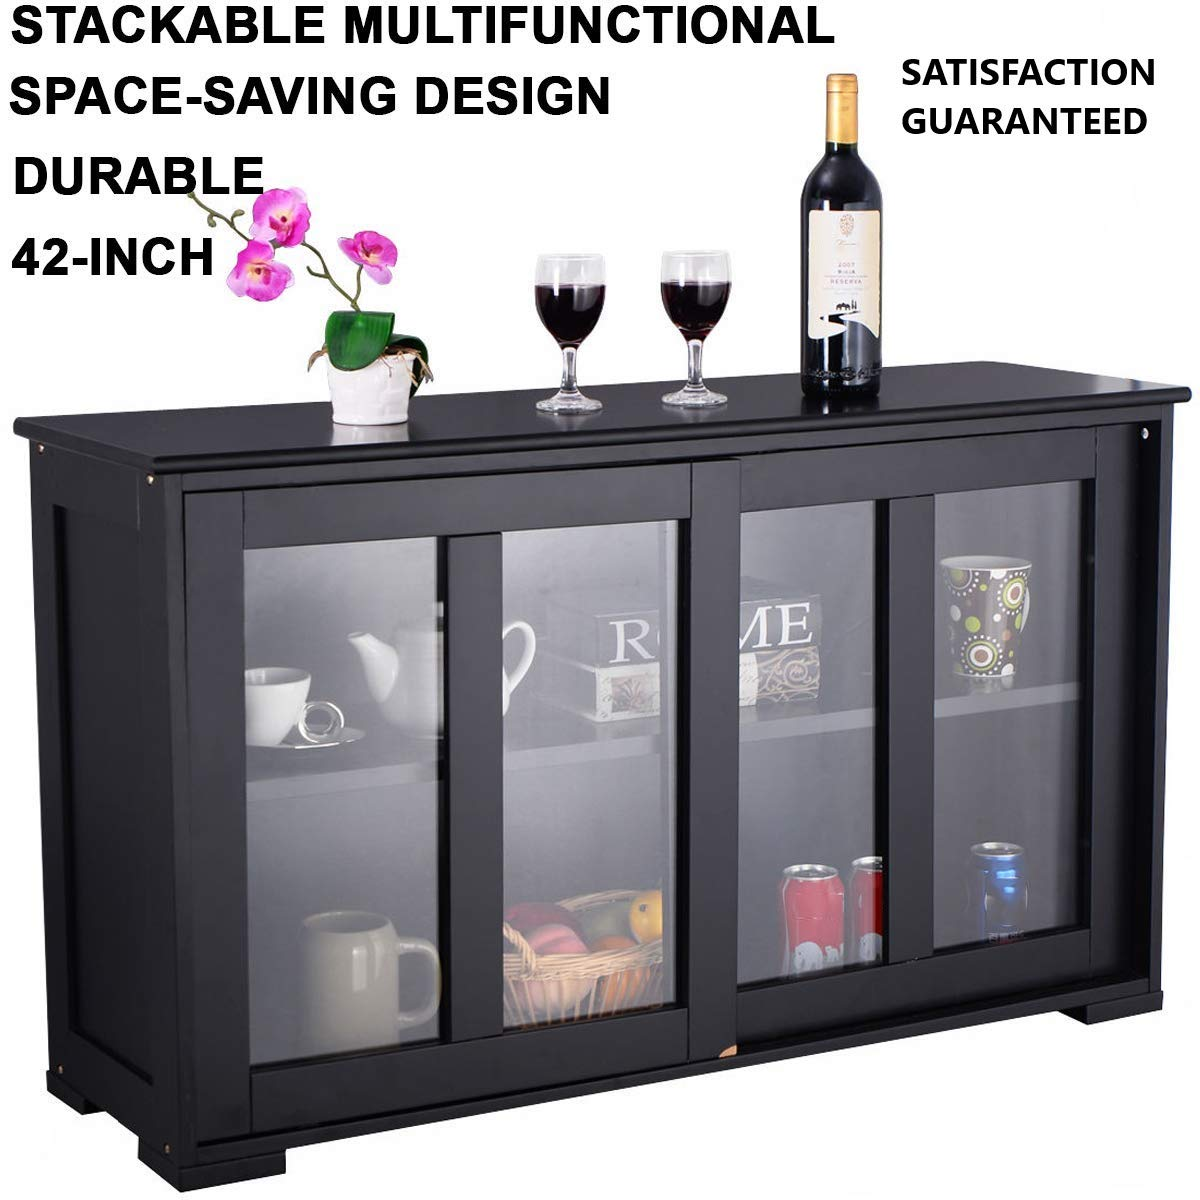 WINMART Stackable Multifunctional Buffet Storage Cabinet with Sliding Door Tempered-Glass Panels Stackable Sideboard, Antique Black (Black), 42 inch Kitchen Storage Cabinet